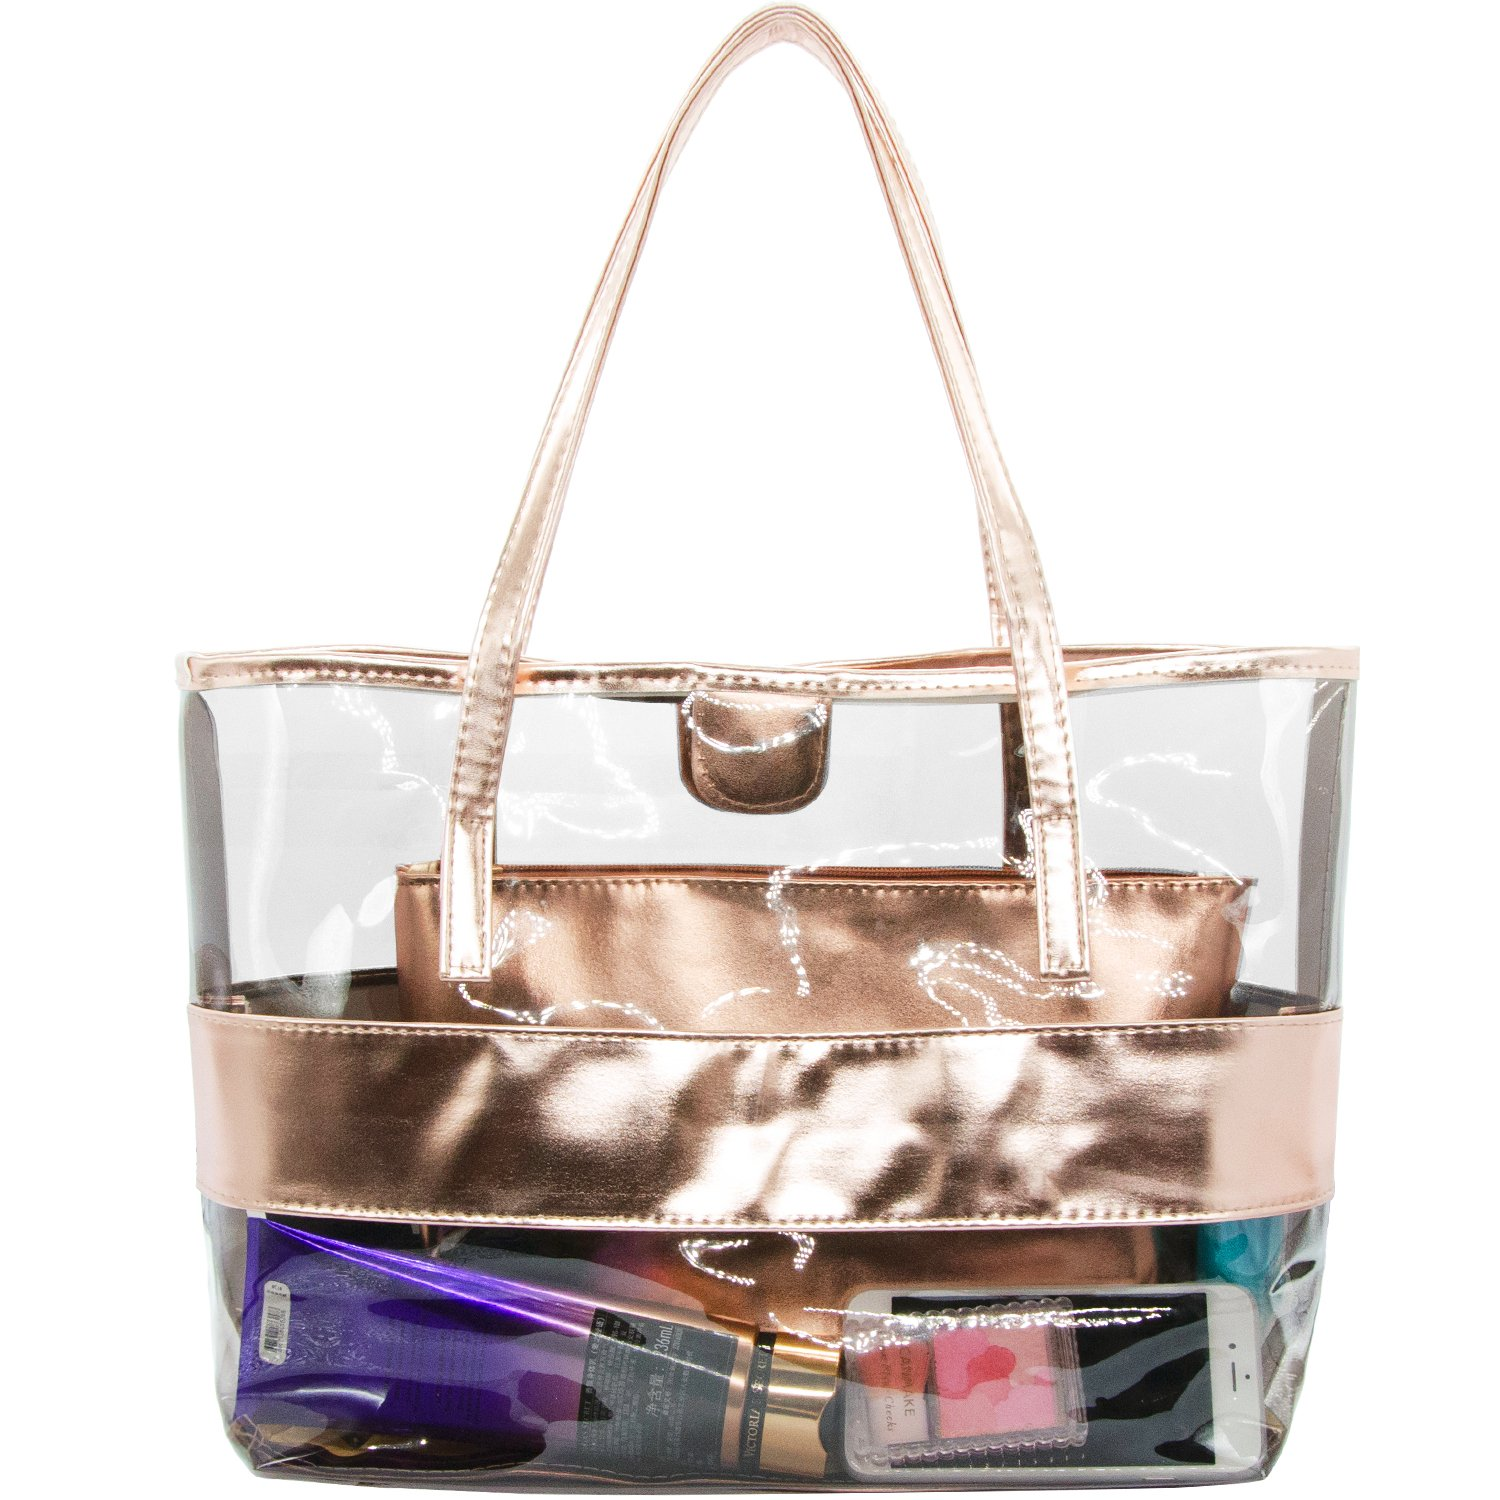 8831a8c4a8 ANXVERS 2 in 1 Cosmetic Bag Portable Toiletry Bag Clear PVC Travel Case  Makeup Organizer Bag